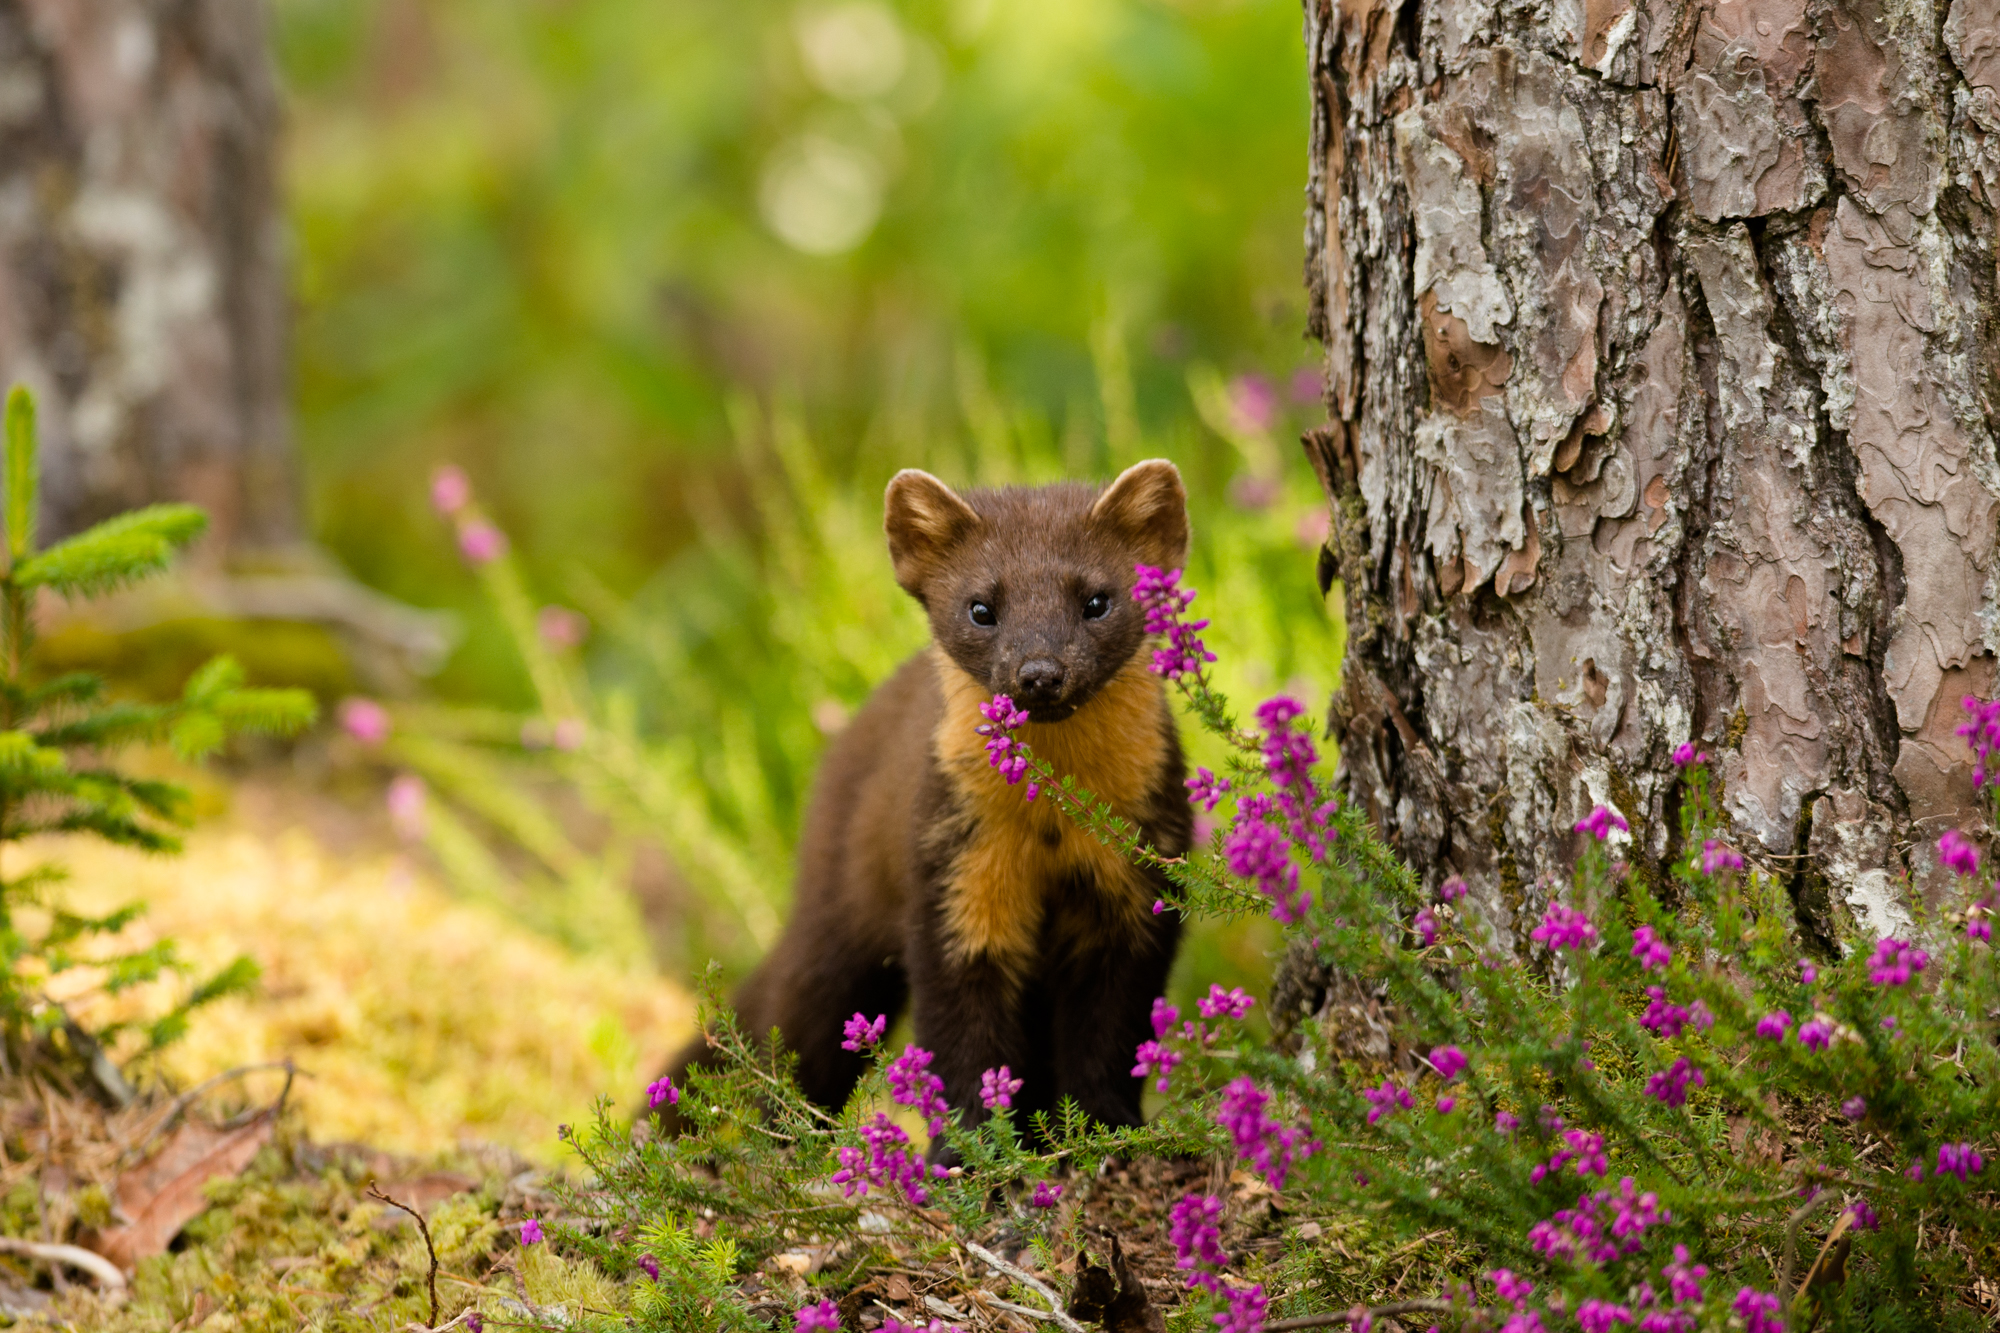 Pine Marten (Martes martes) in Scotts pine forest West highlands Stewart Dawber (2)